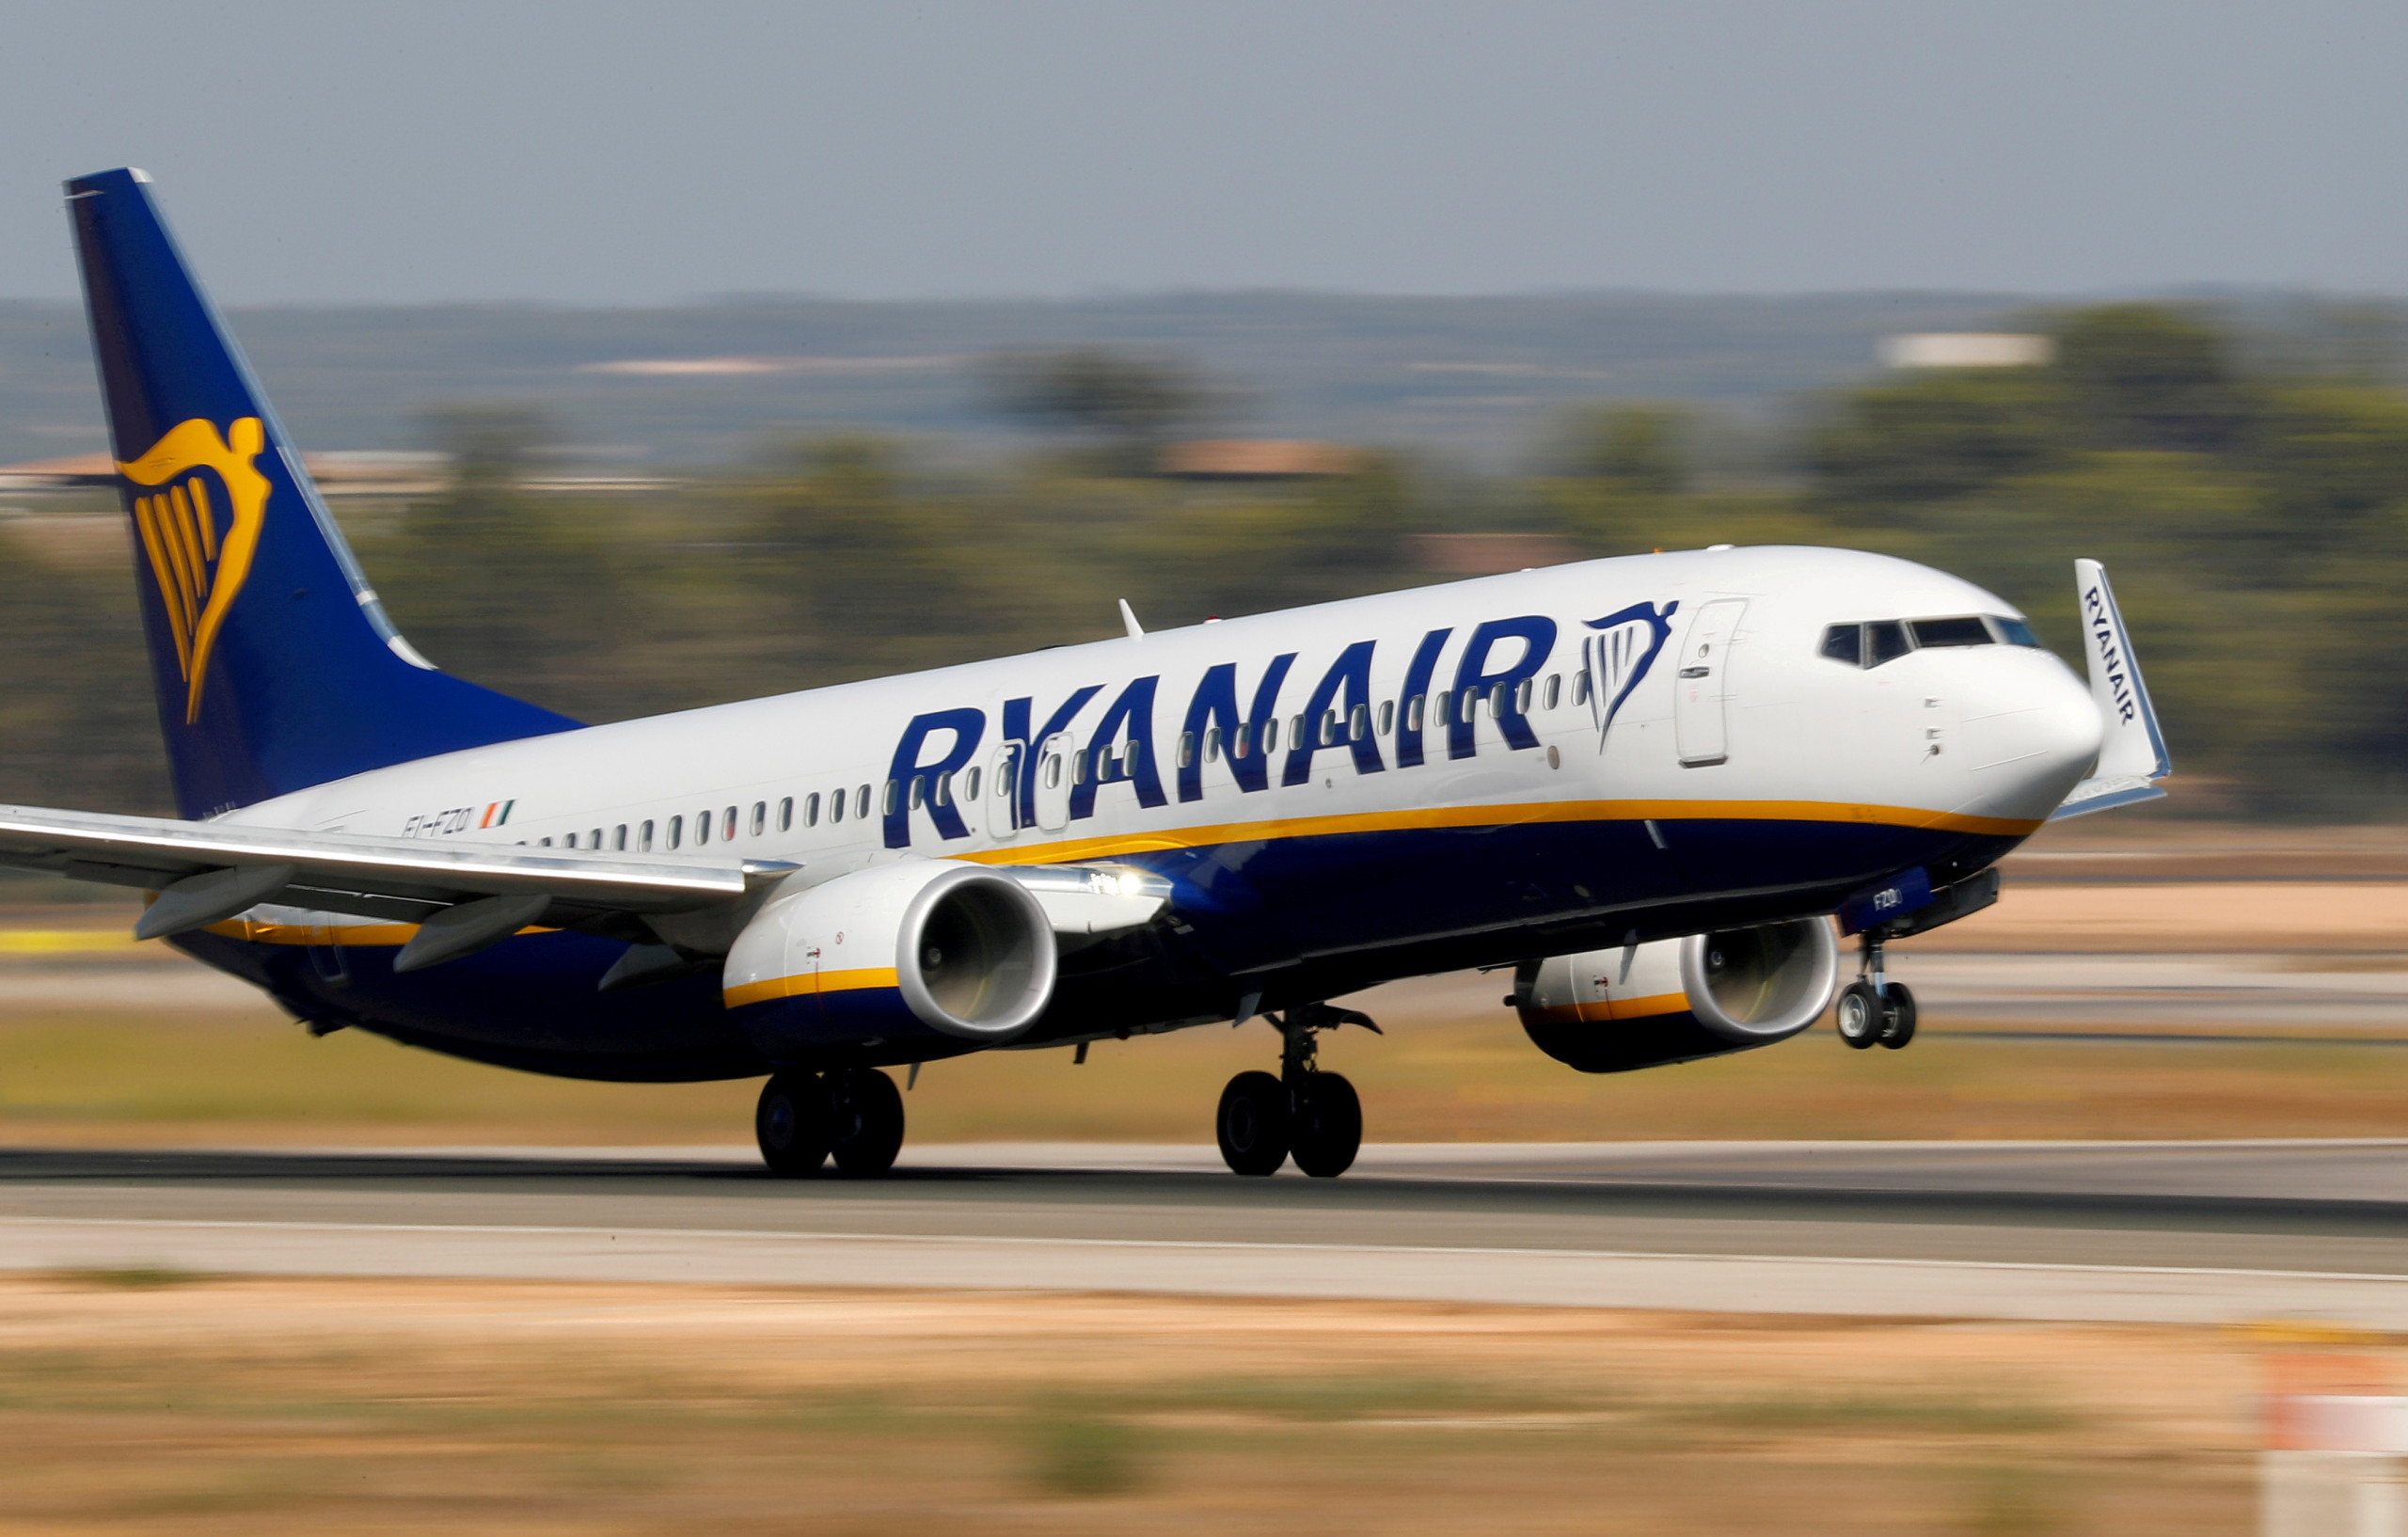 Ryanair expects to fly more passengers this autumn than in summer